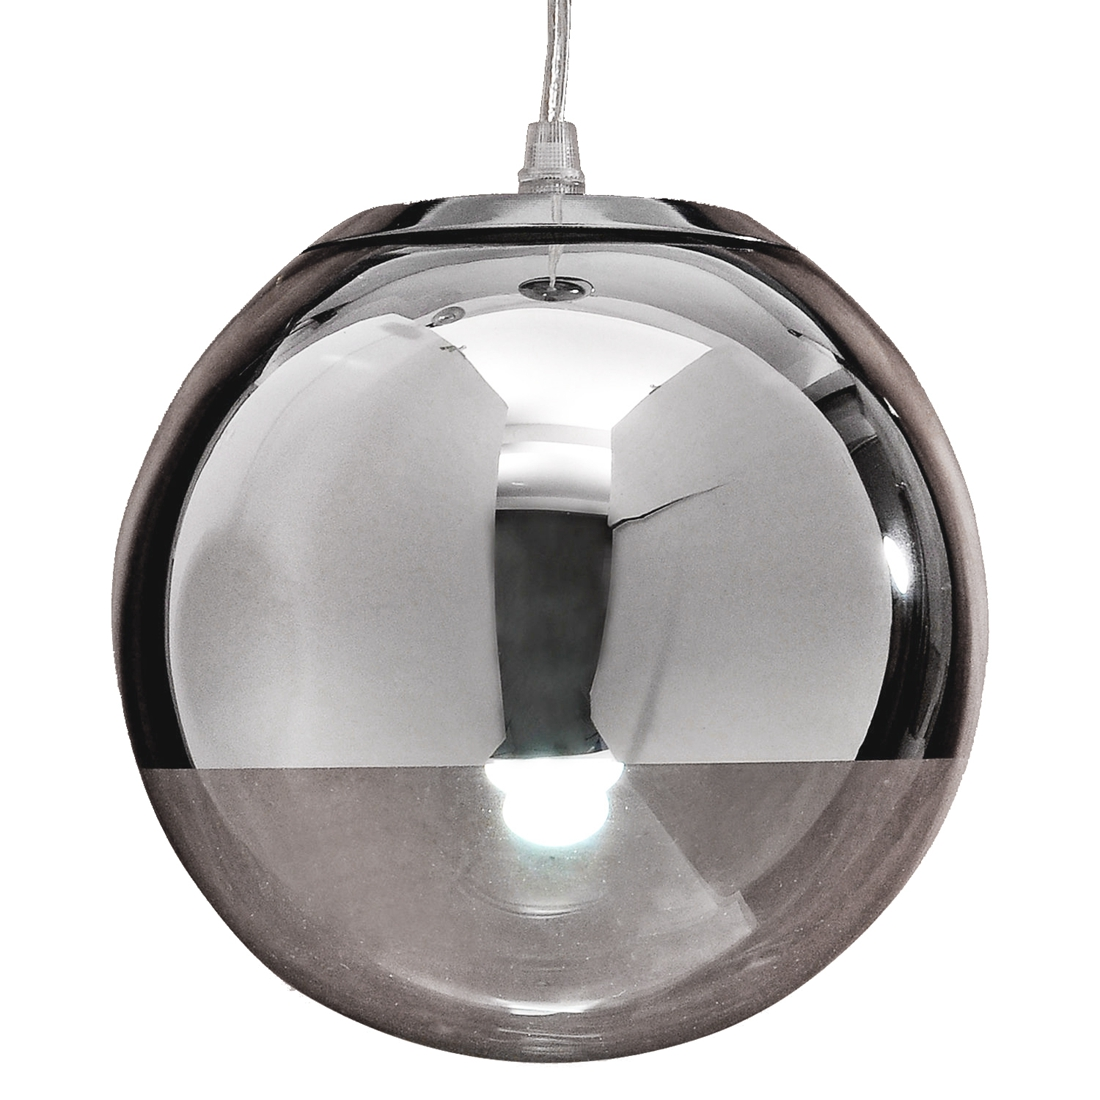 NFLC-Pendant Chandelier Ceiling Globe Lamp Light Bulb Metal Body Chrome<br>